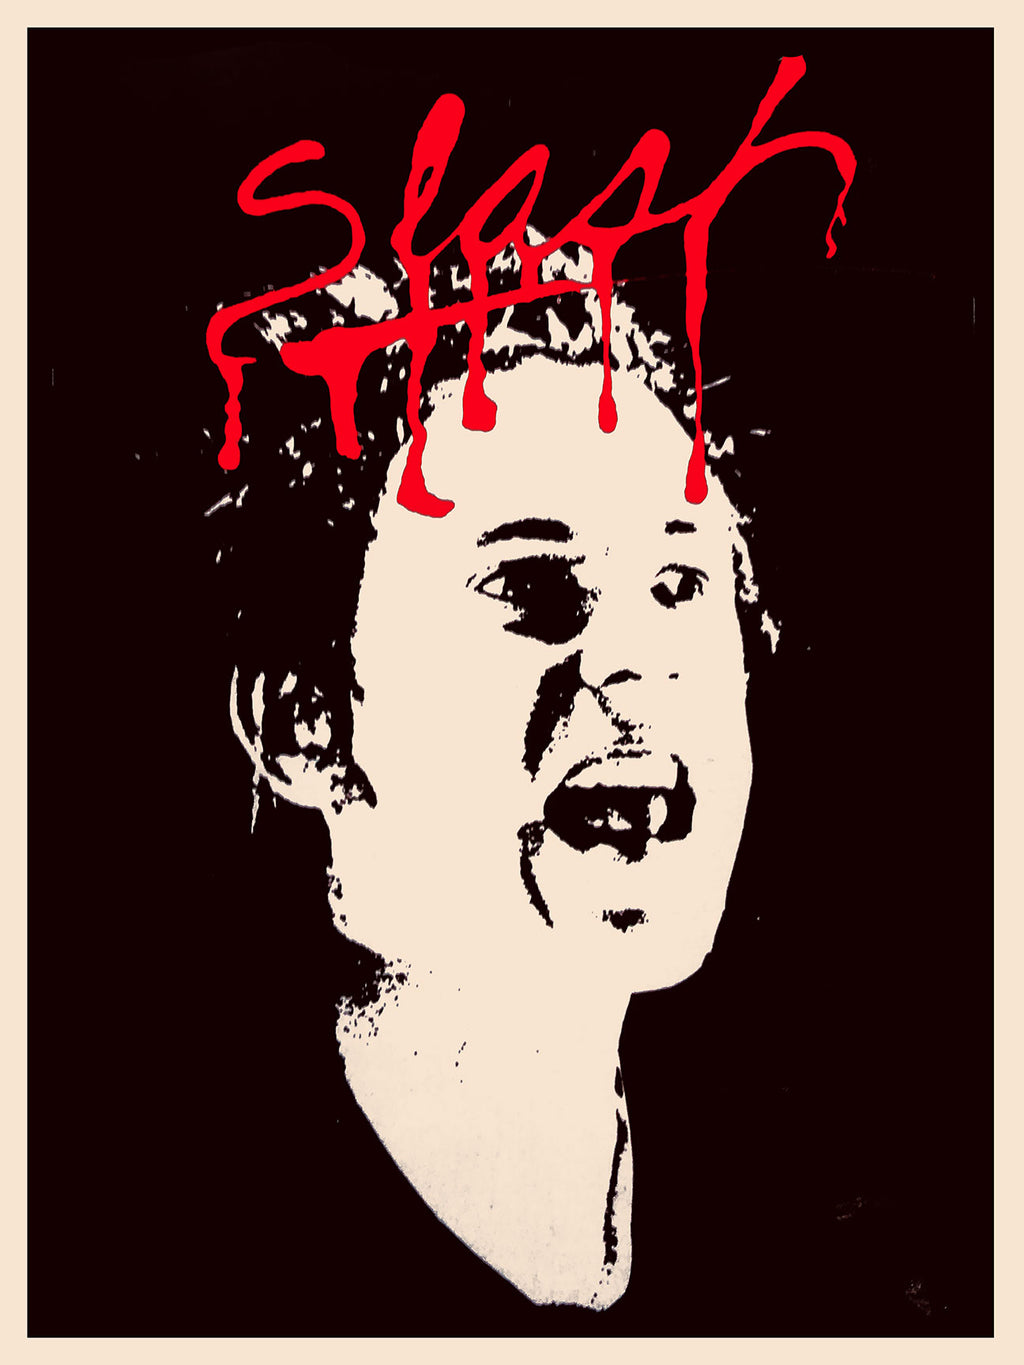 Slash - Johnny Rotten Poster